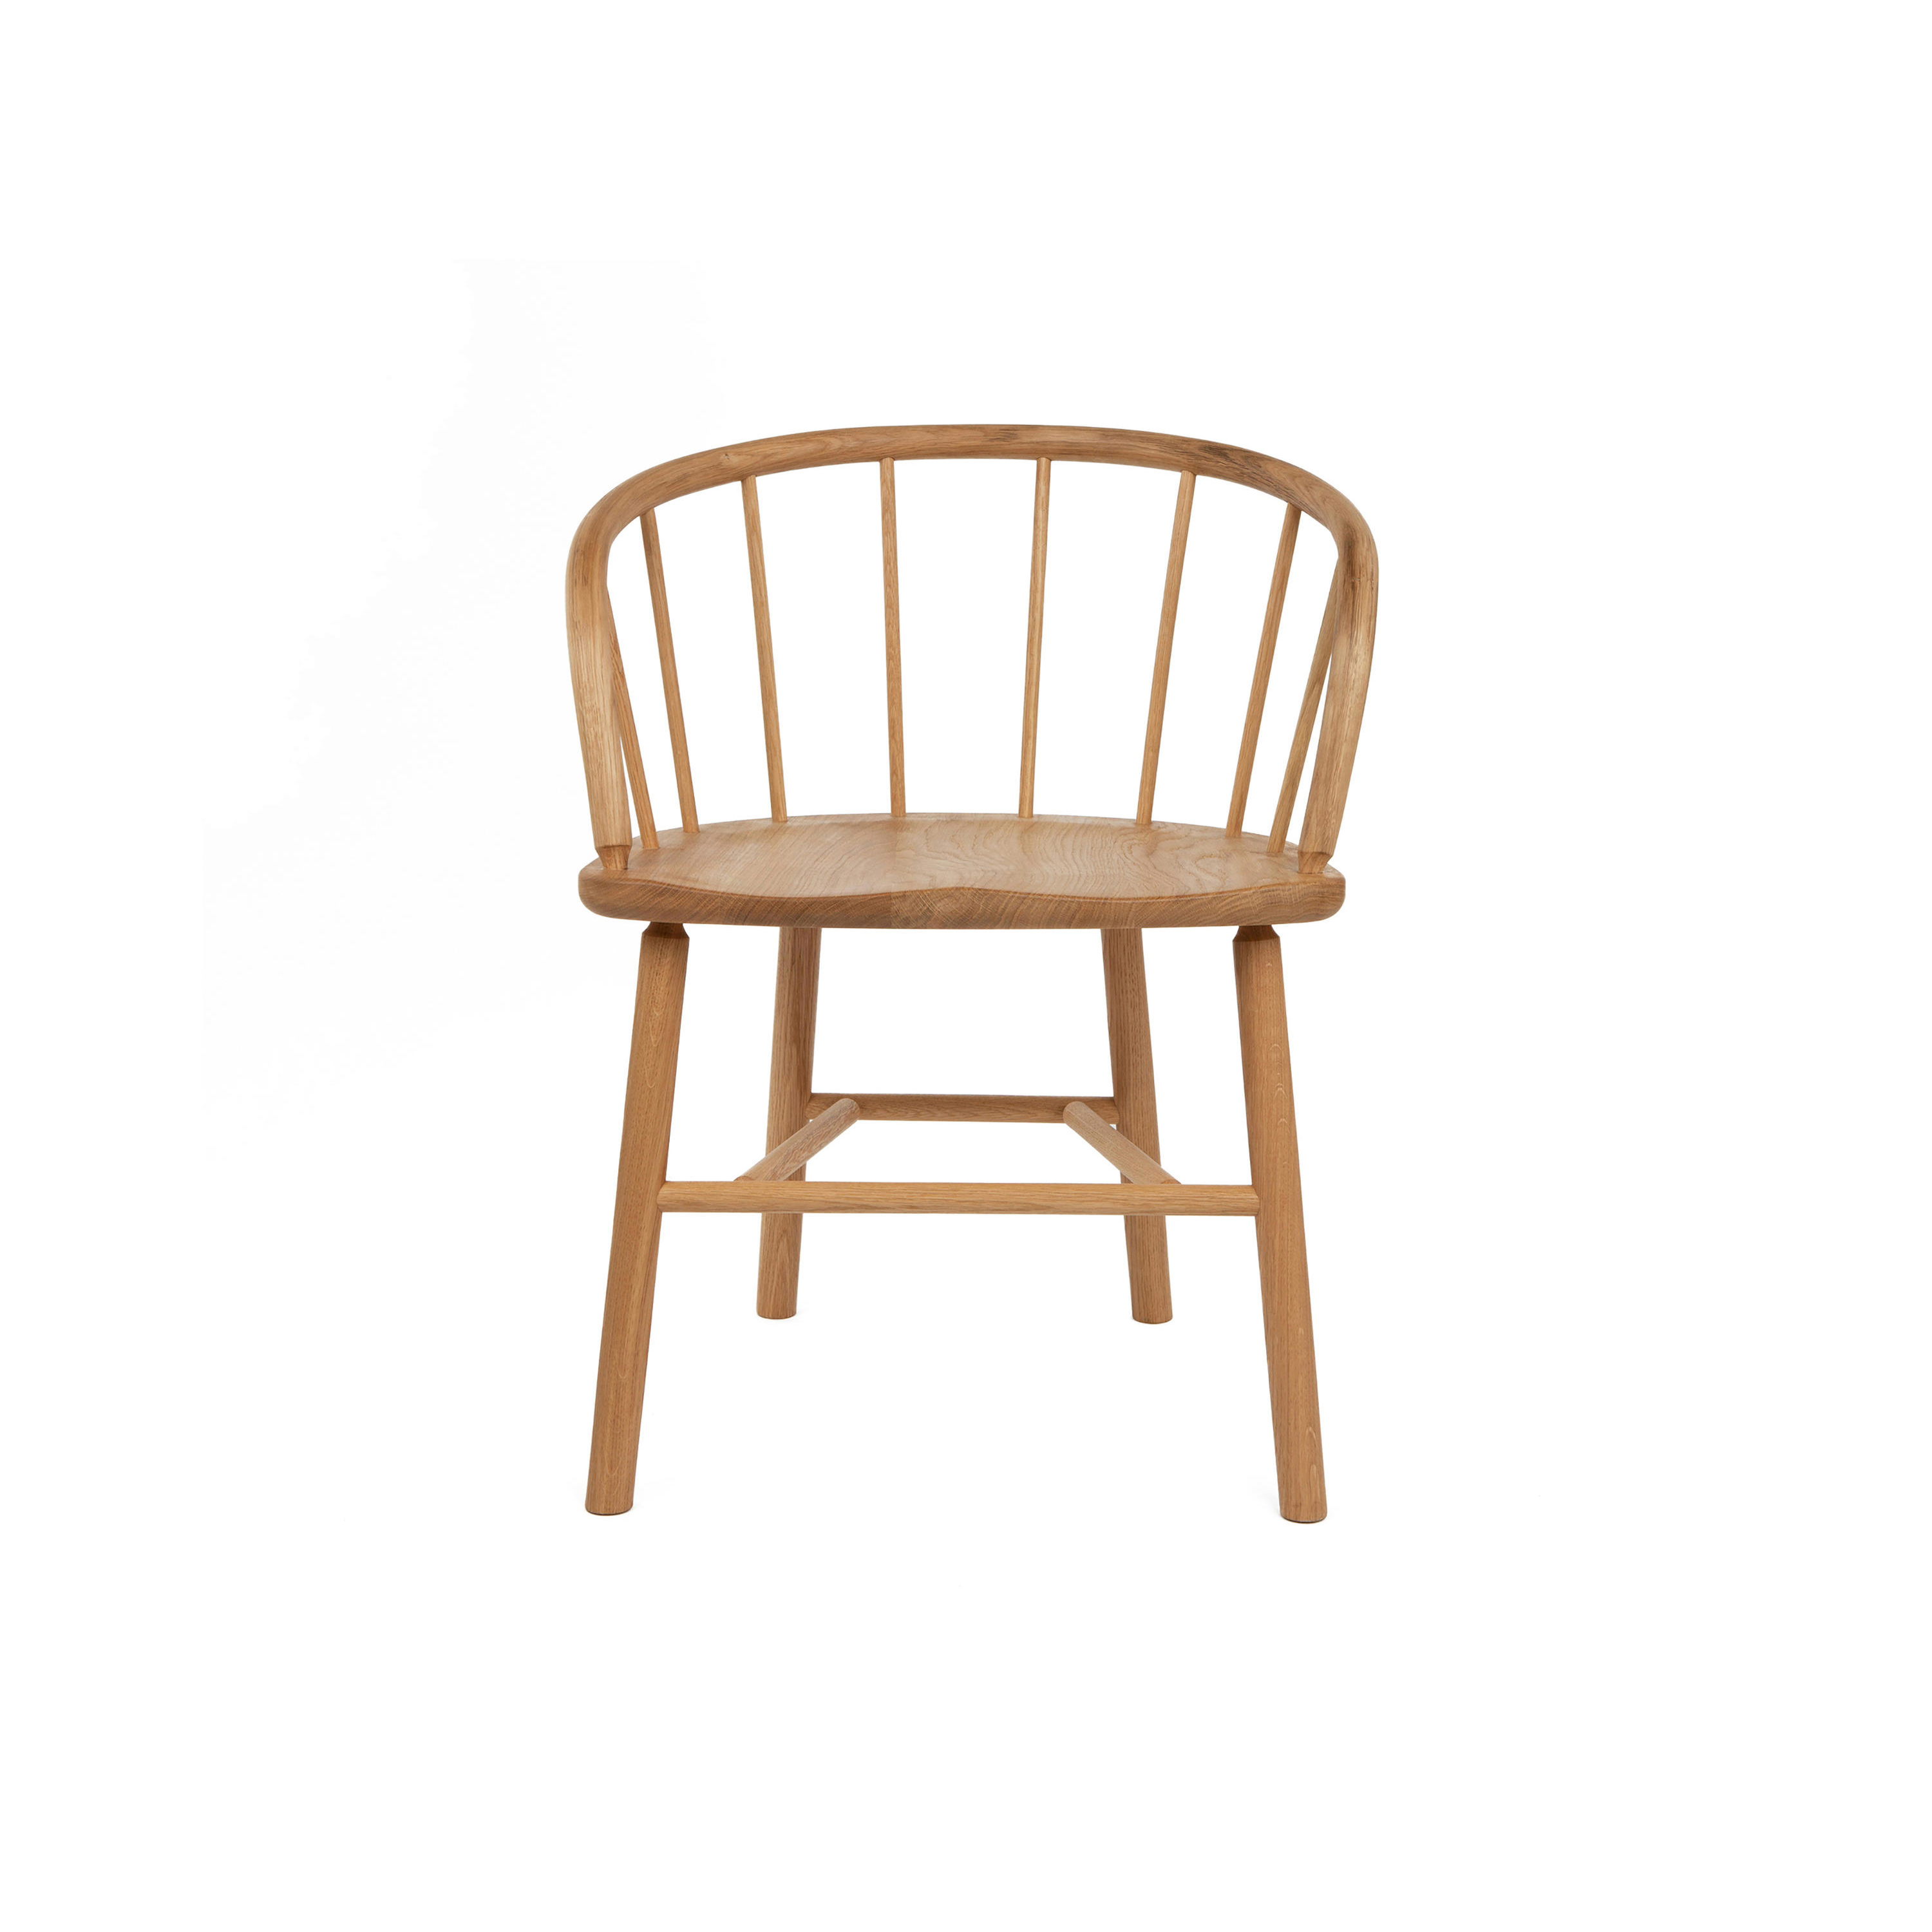 Another Country Hardy Chair